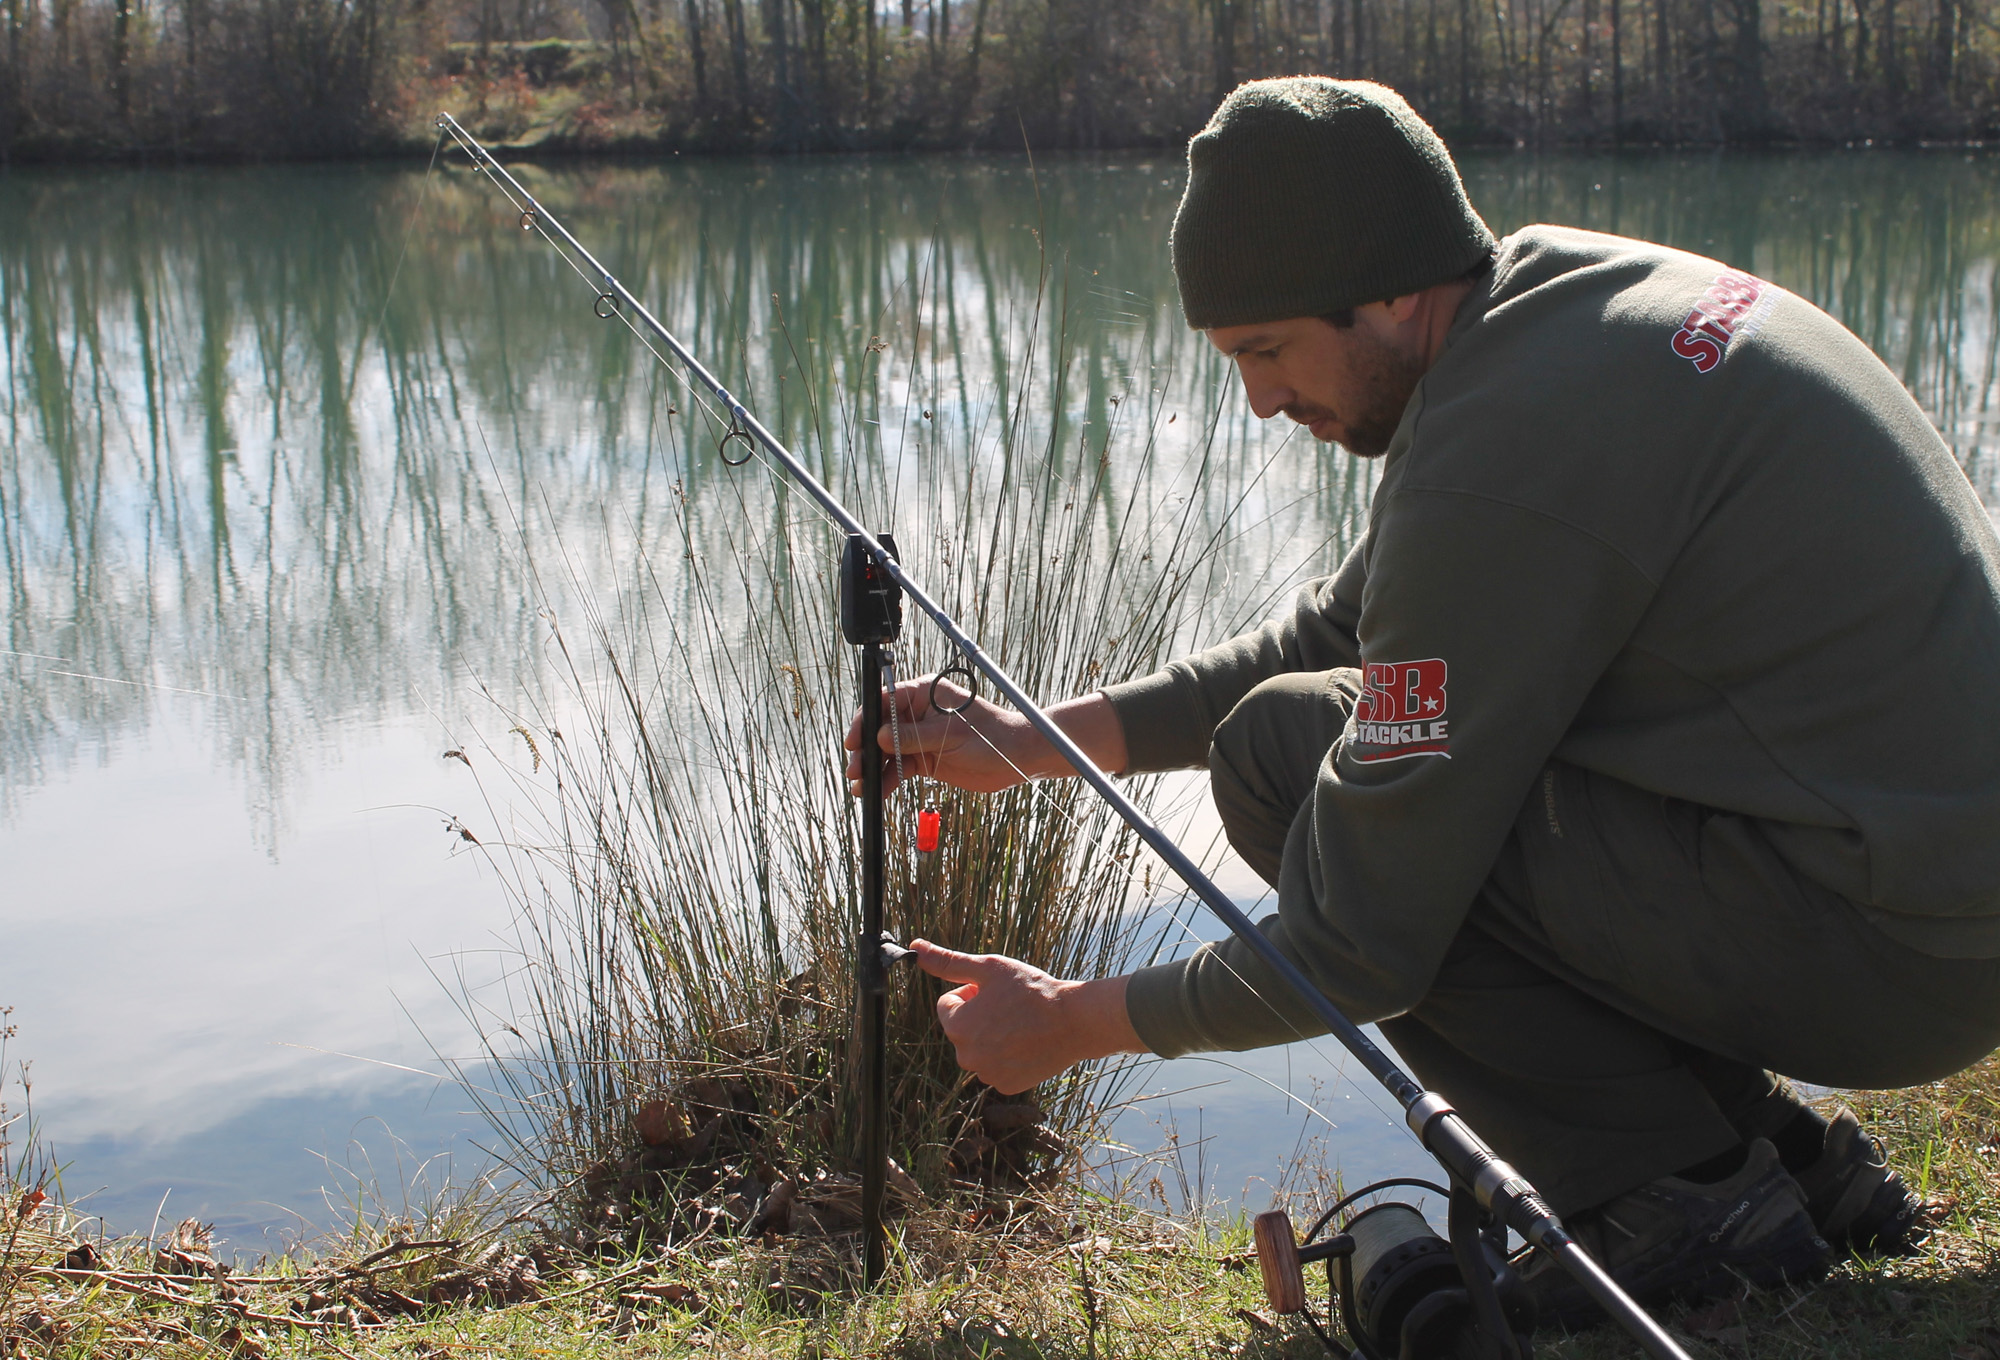 http://www.starbaits.com/fichiers/images/team/gallery/DUCERE_Cedric/24-DUCERE-CEDRIC.jpg